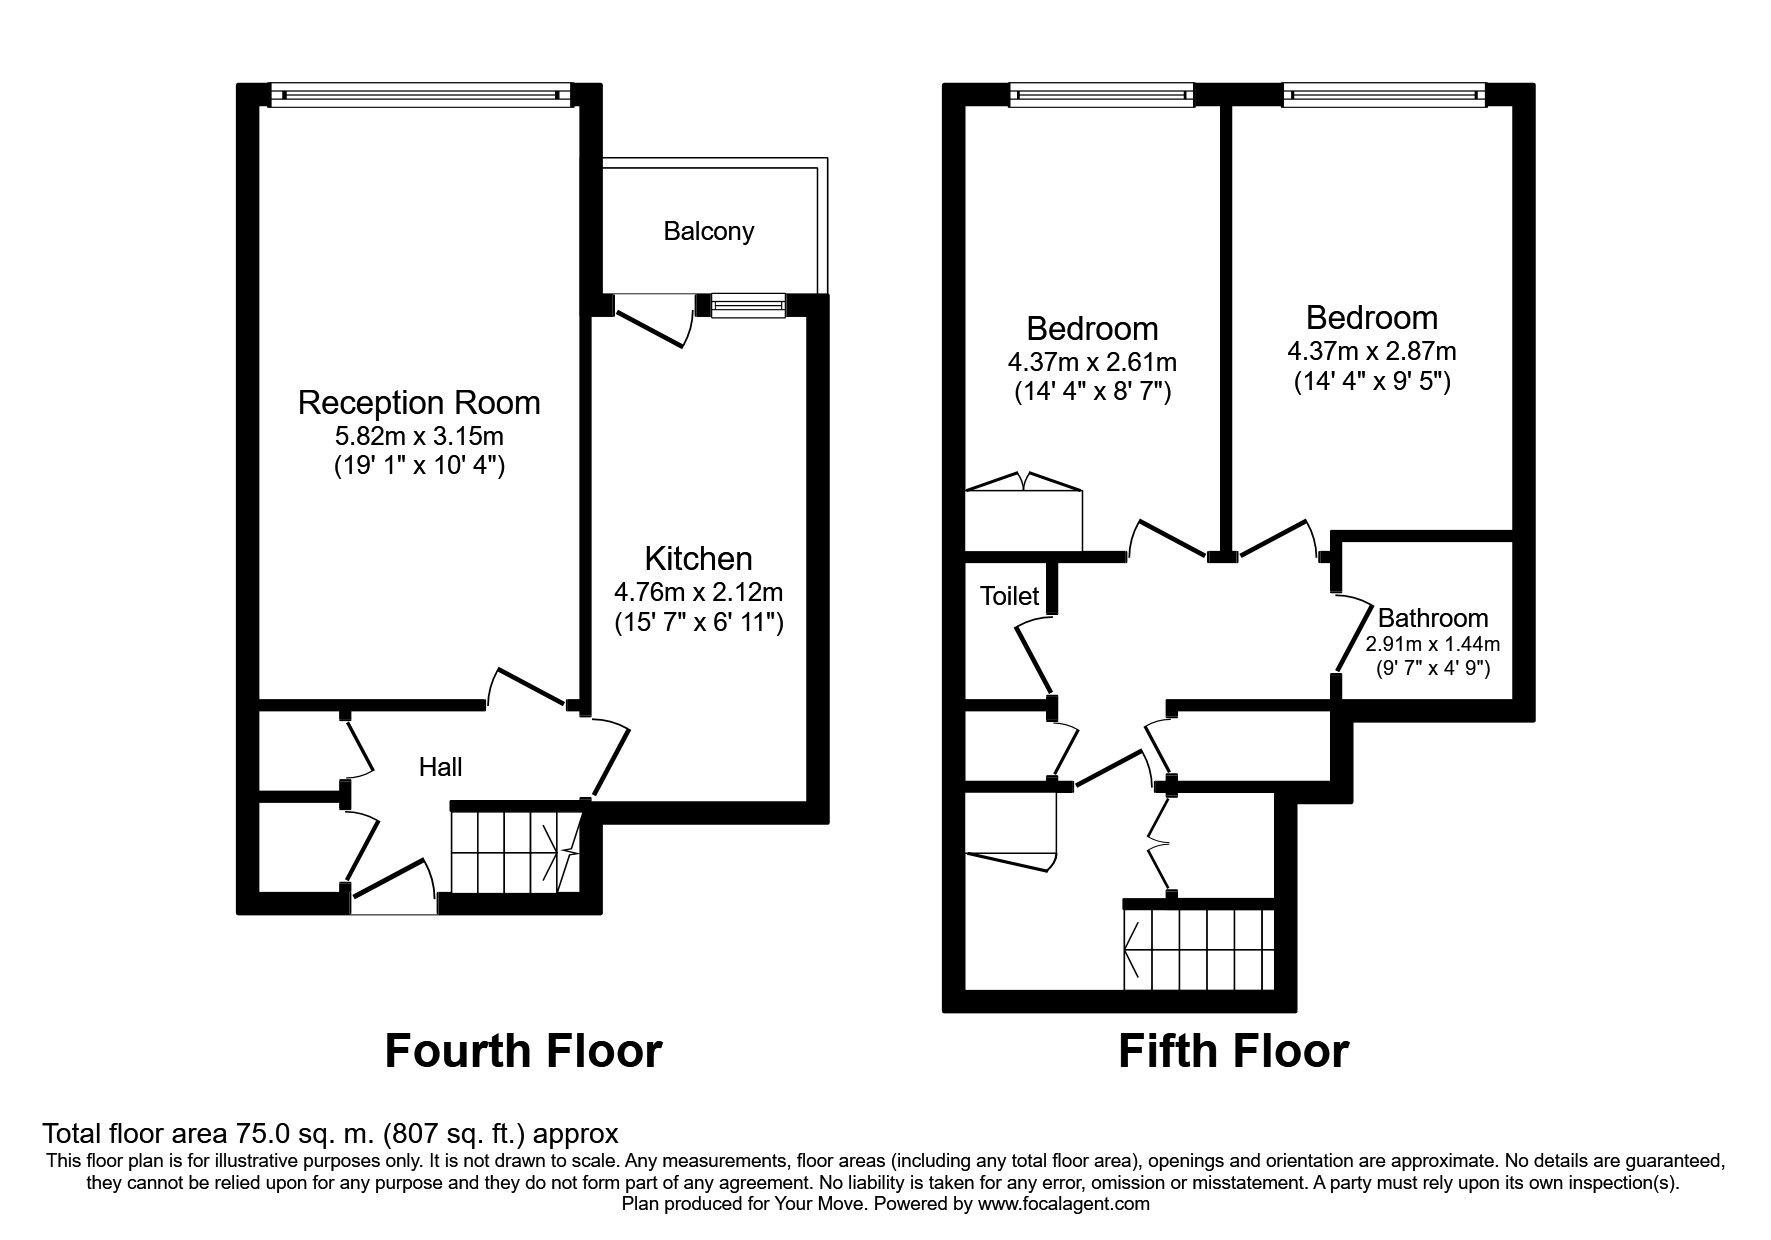 2 bedroom flats to rent in London - Your Move